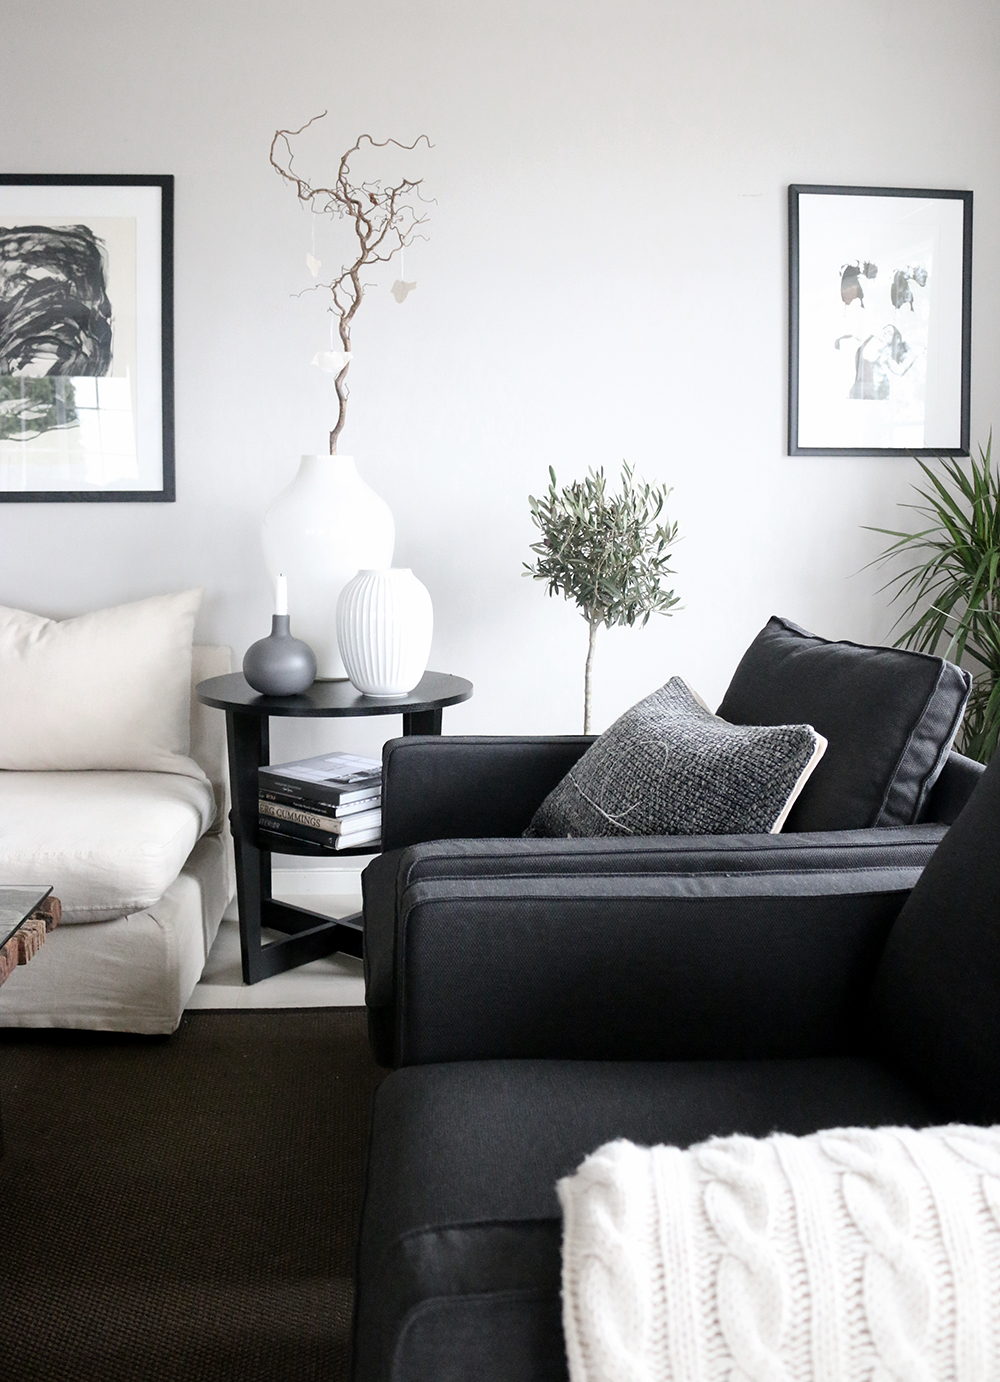 Livingroom-black-white-grey-Anette-Willemine-Solheim-8